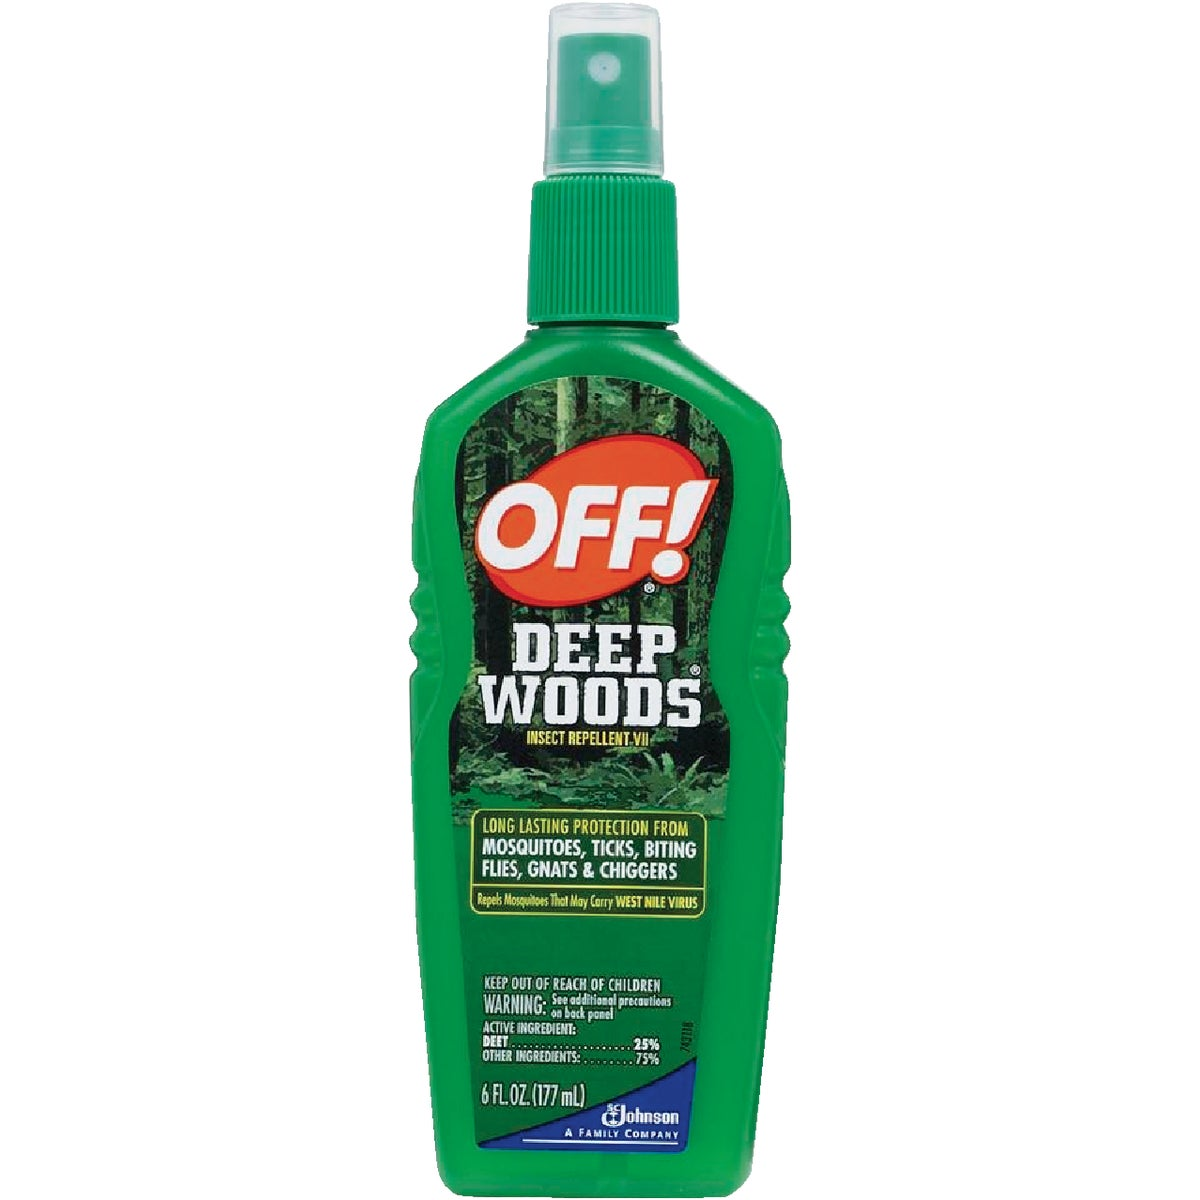 DEEP WOODS BUG REPELLENT